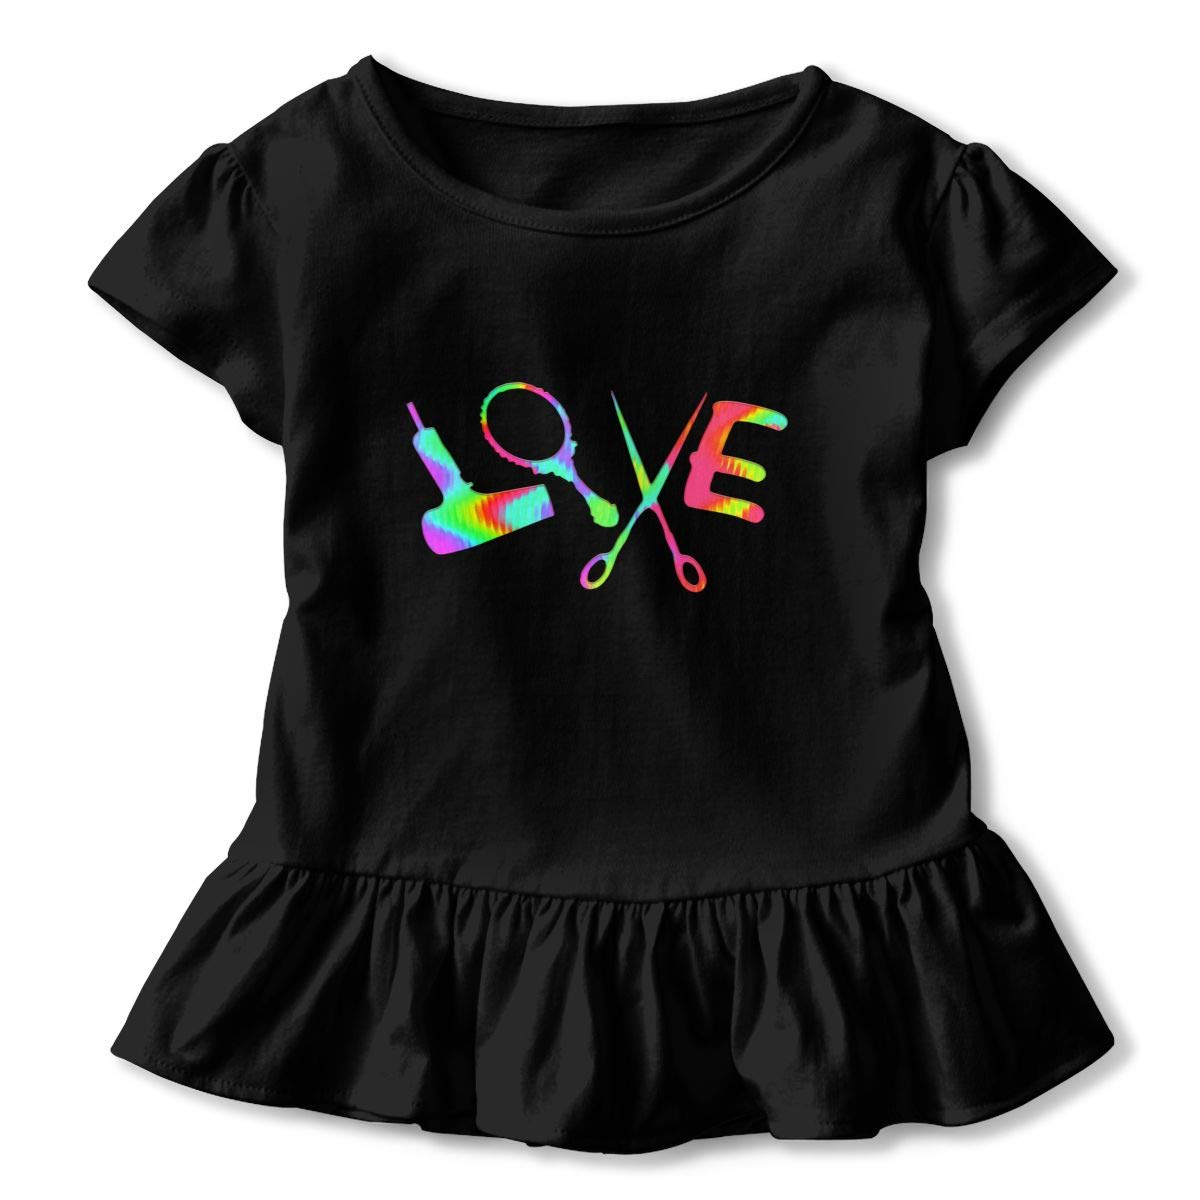 CZnuen Colorful Hair Stylist Love Baby Girls Basic Short Puff Sleeve Round Neck Ruffle T-Shirt